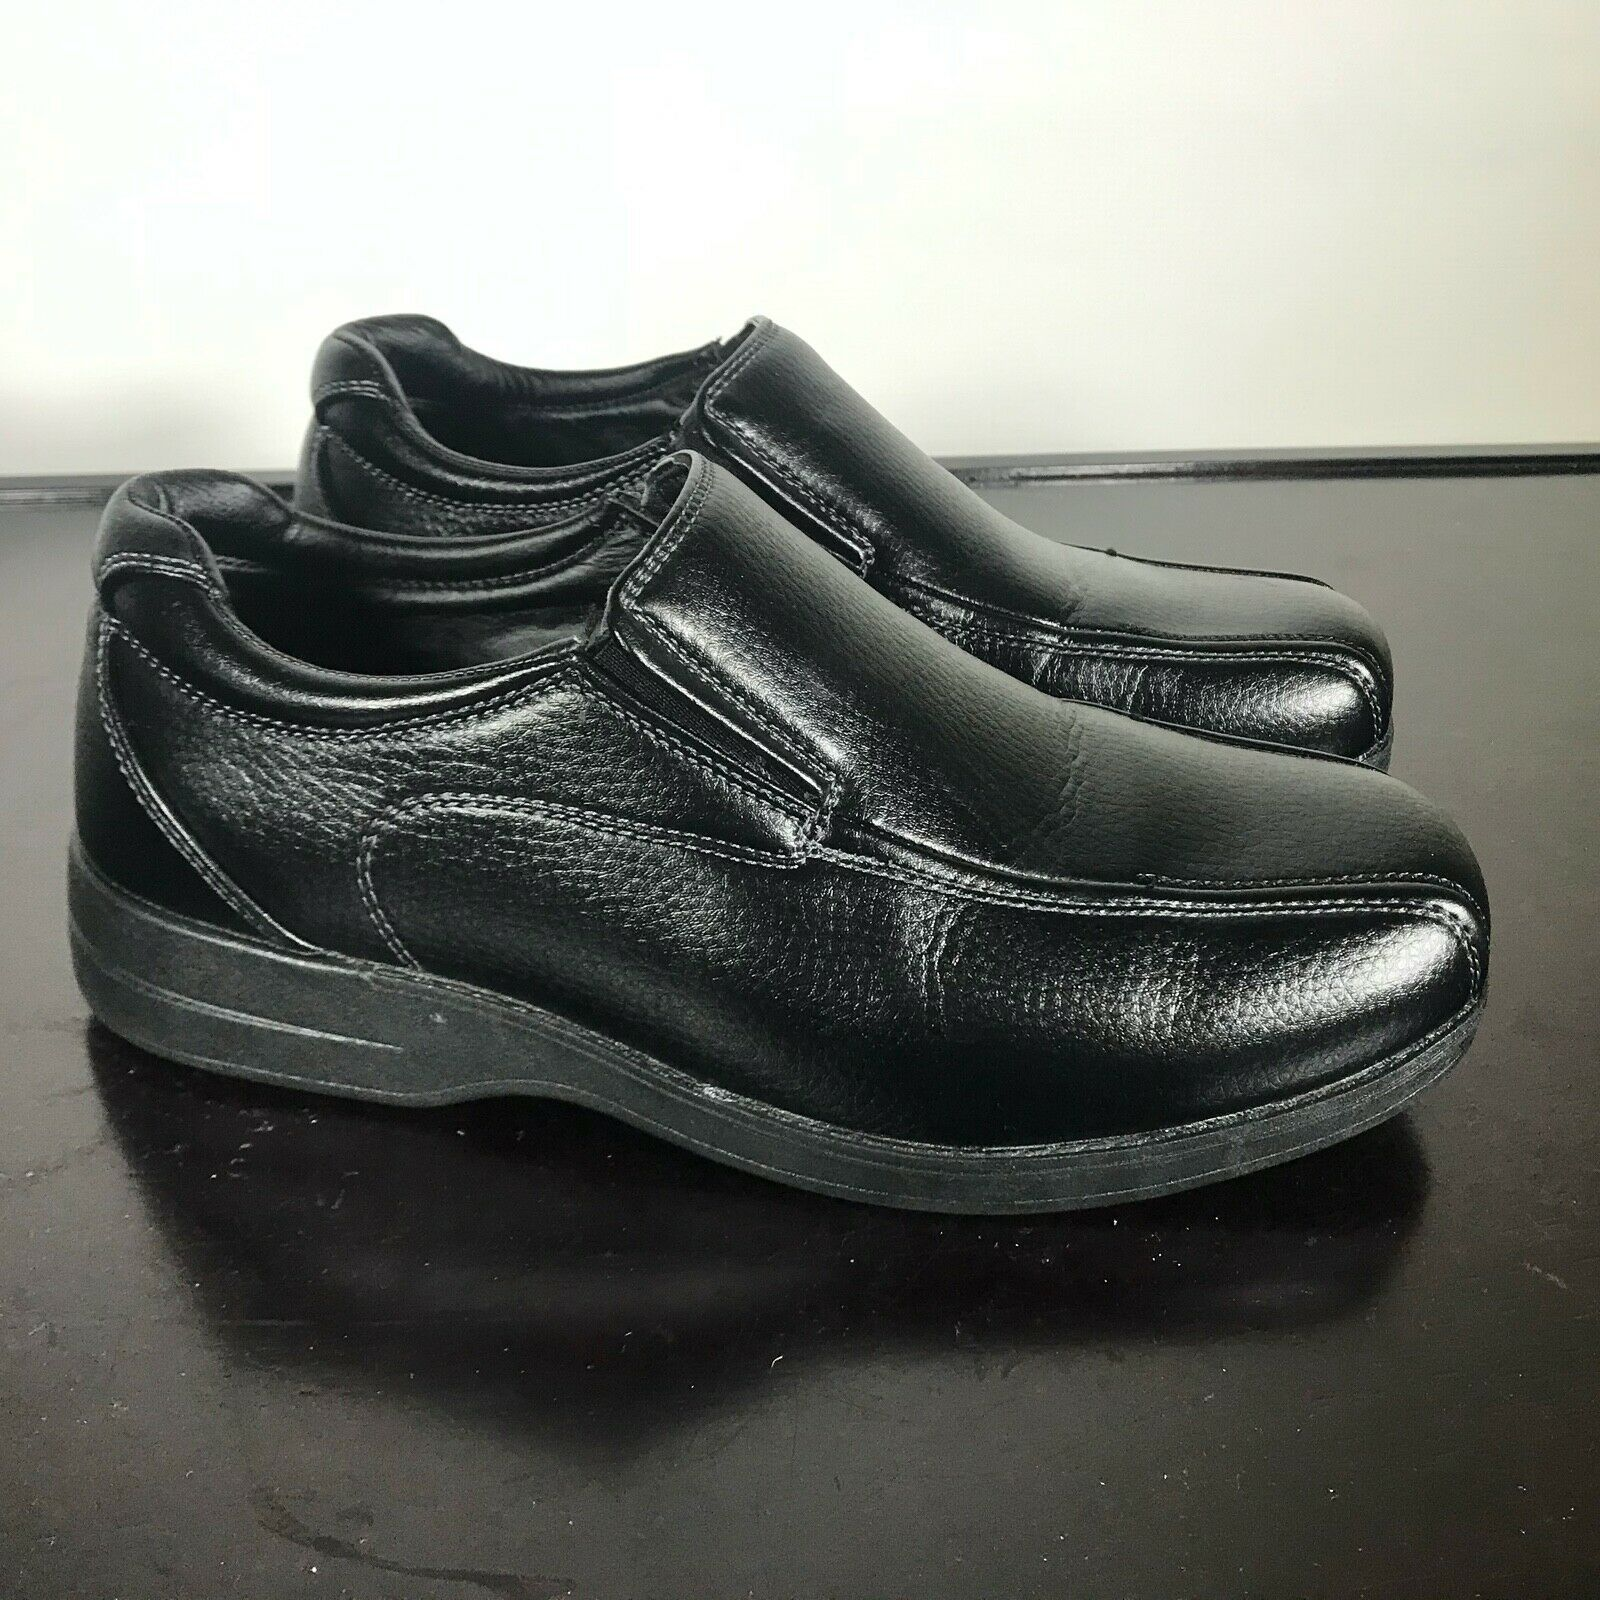 Primary image for Goodyear Logan Casual Men's Footwear Shoes Size 7.5W (Wide). Black. Worn Once